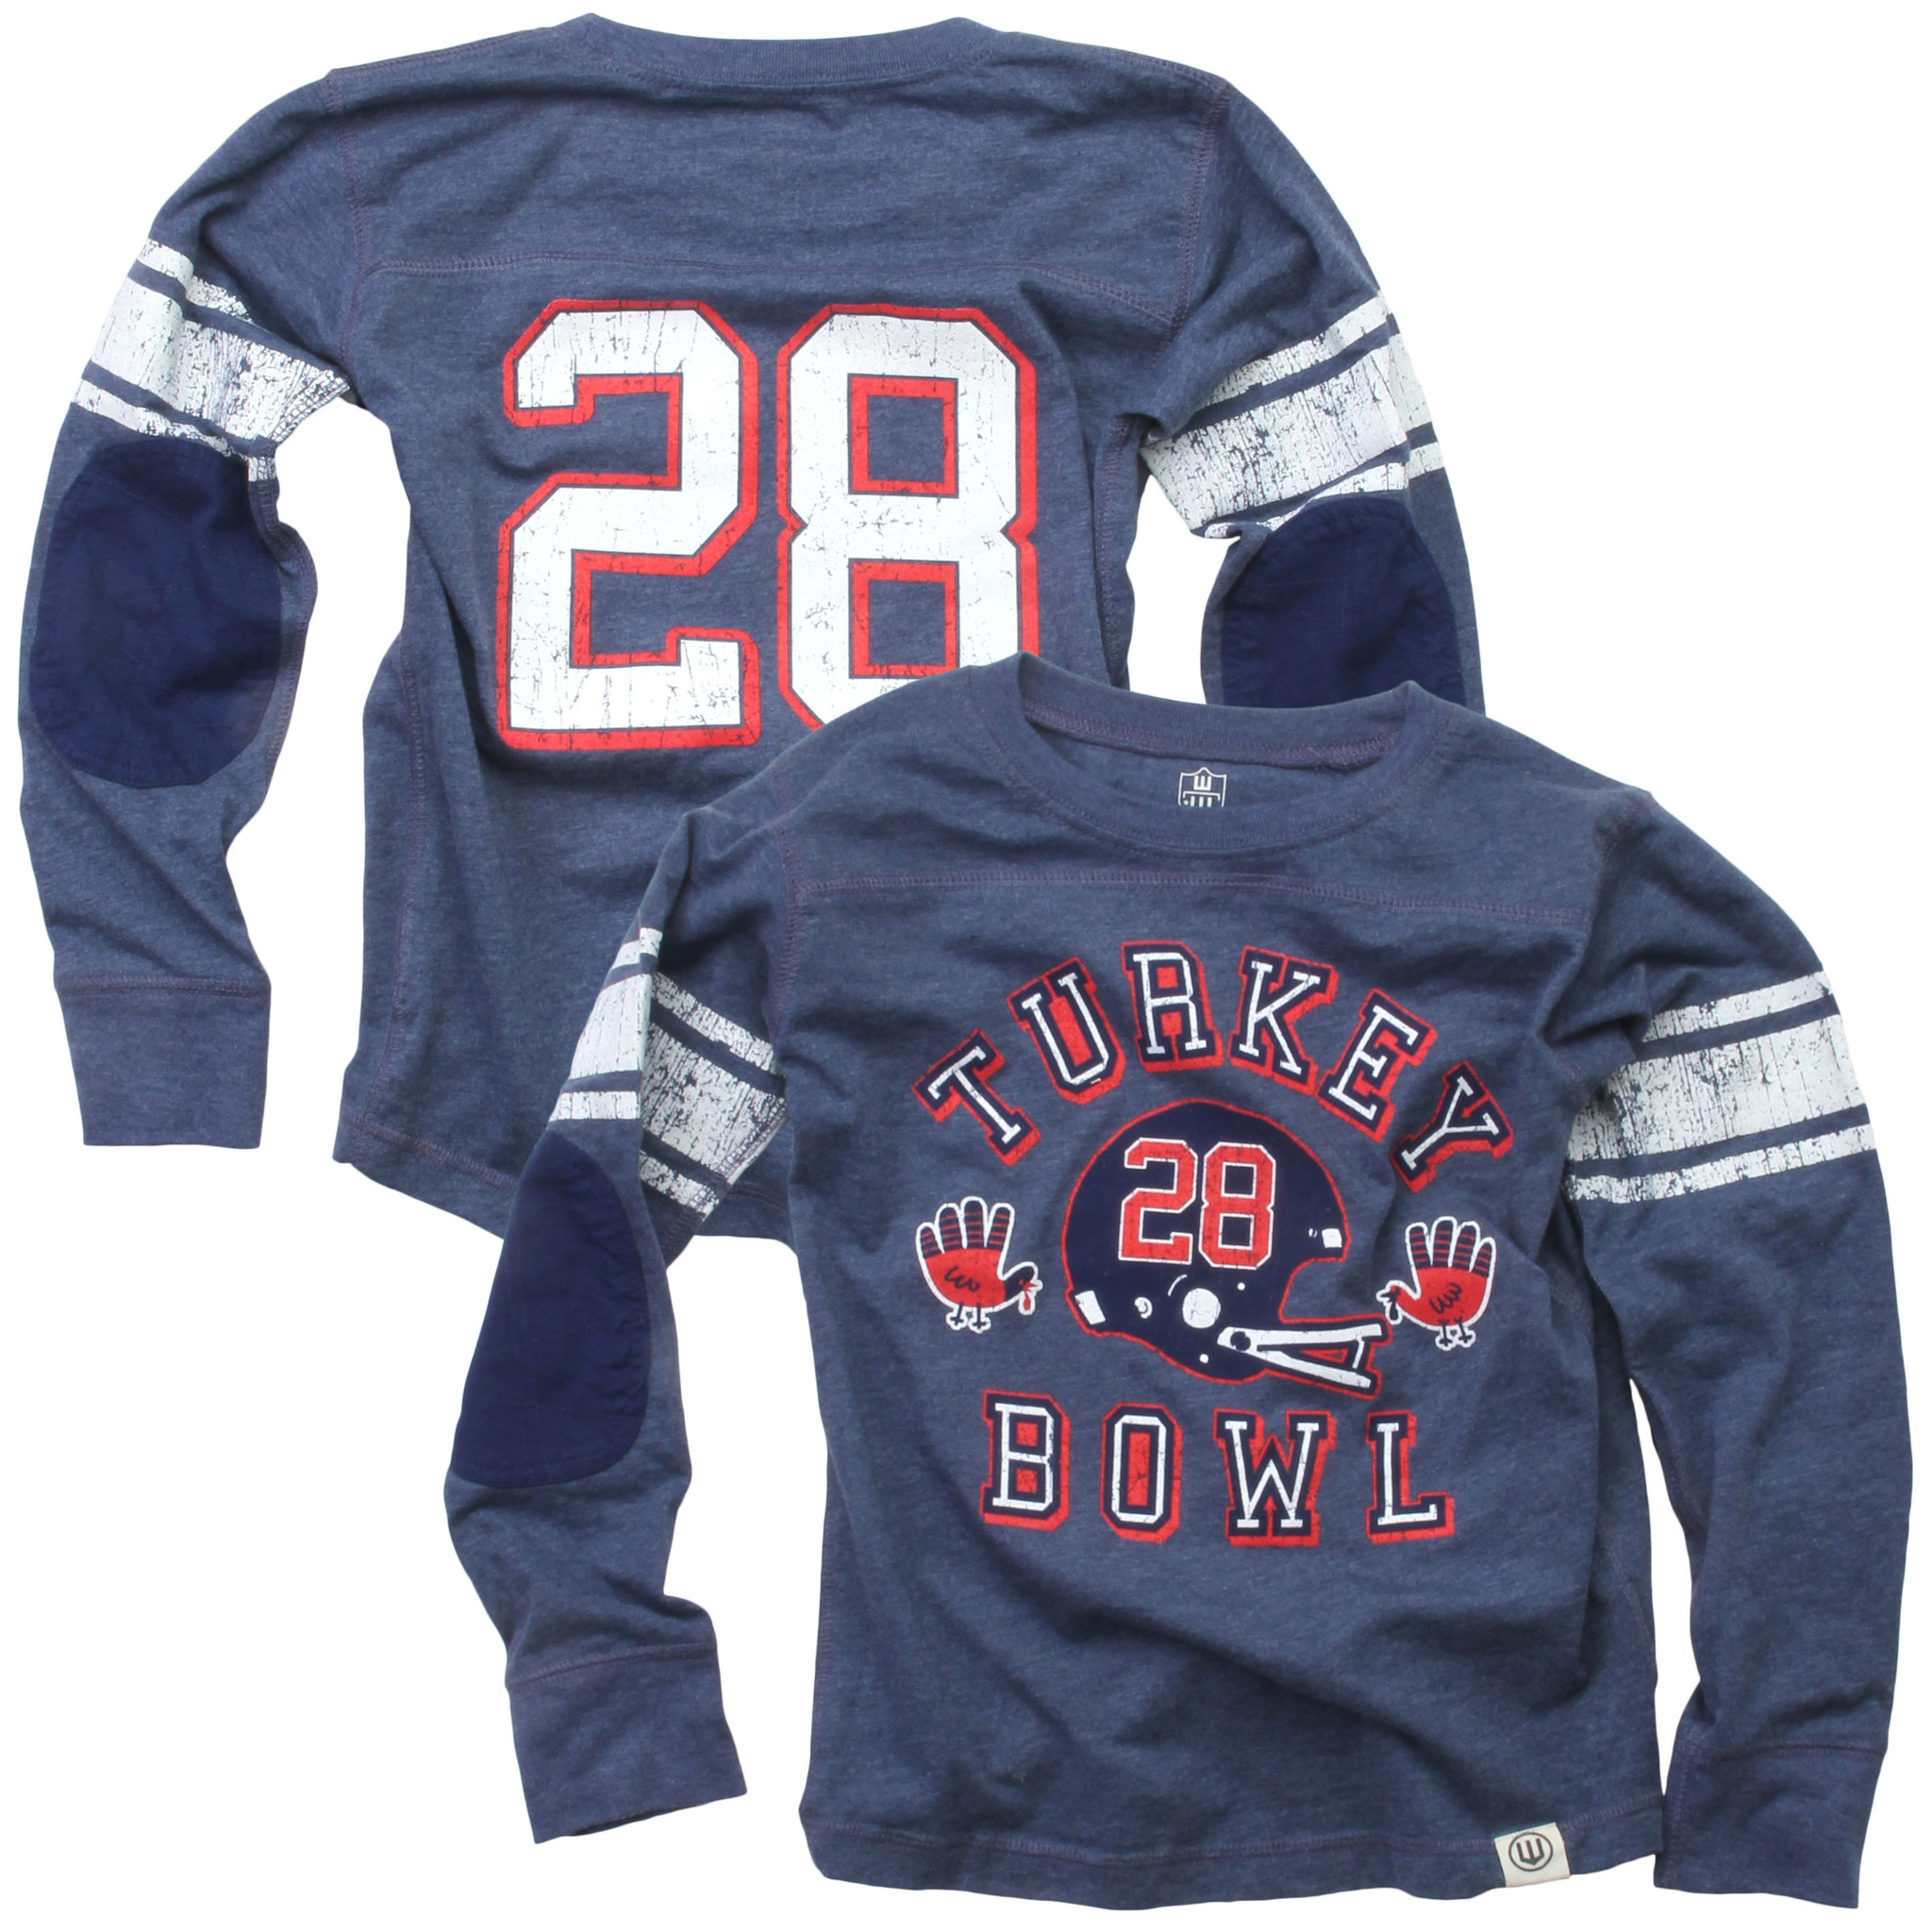 Wes And Willy LS Turkey Bowl Jersey Midnight